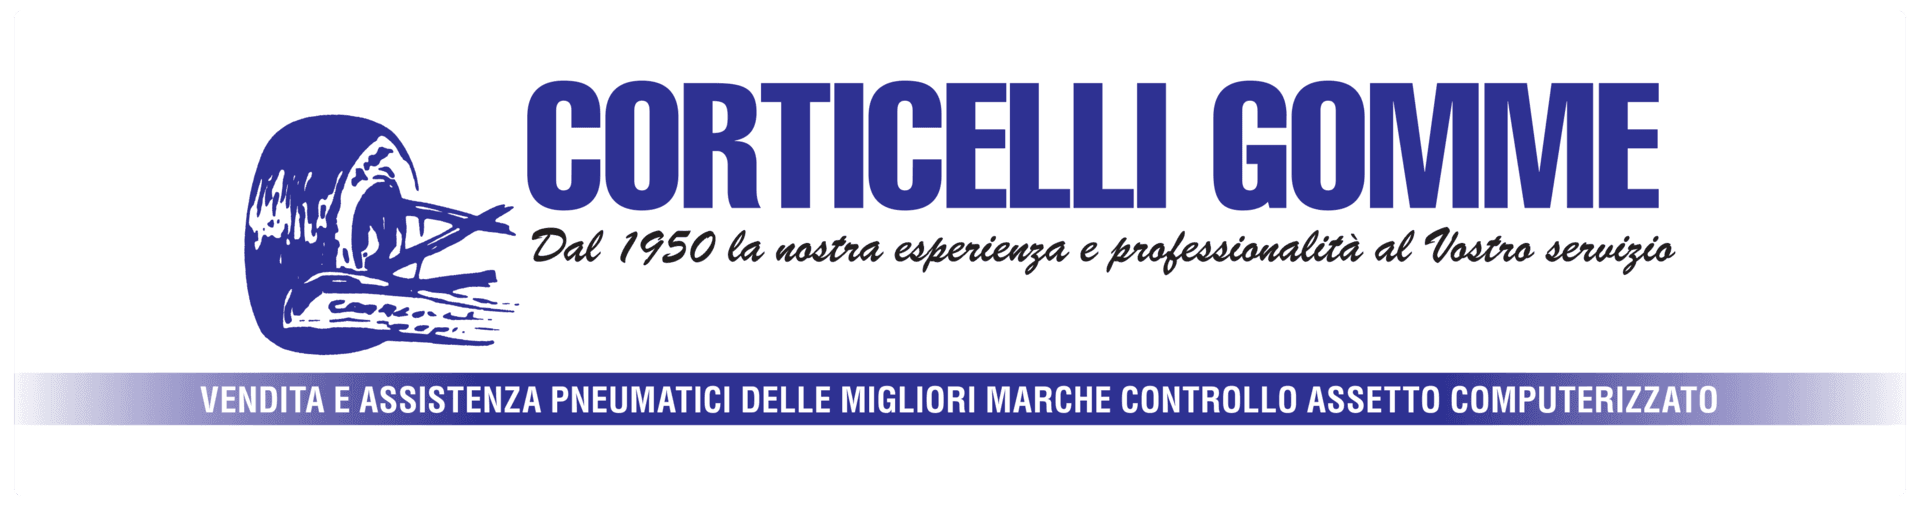 CORTICELLI GOMME - LOGO